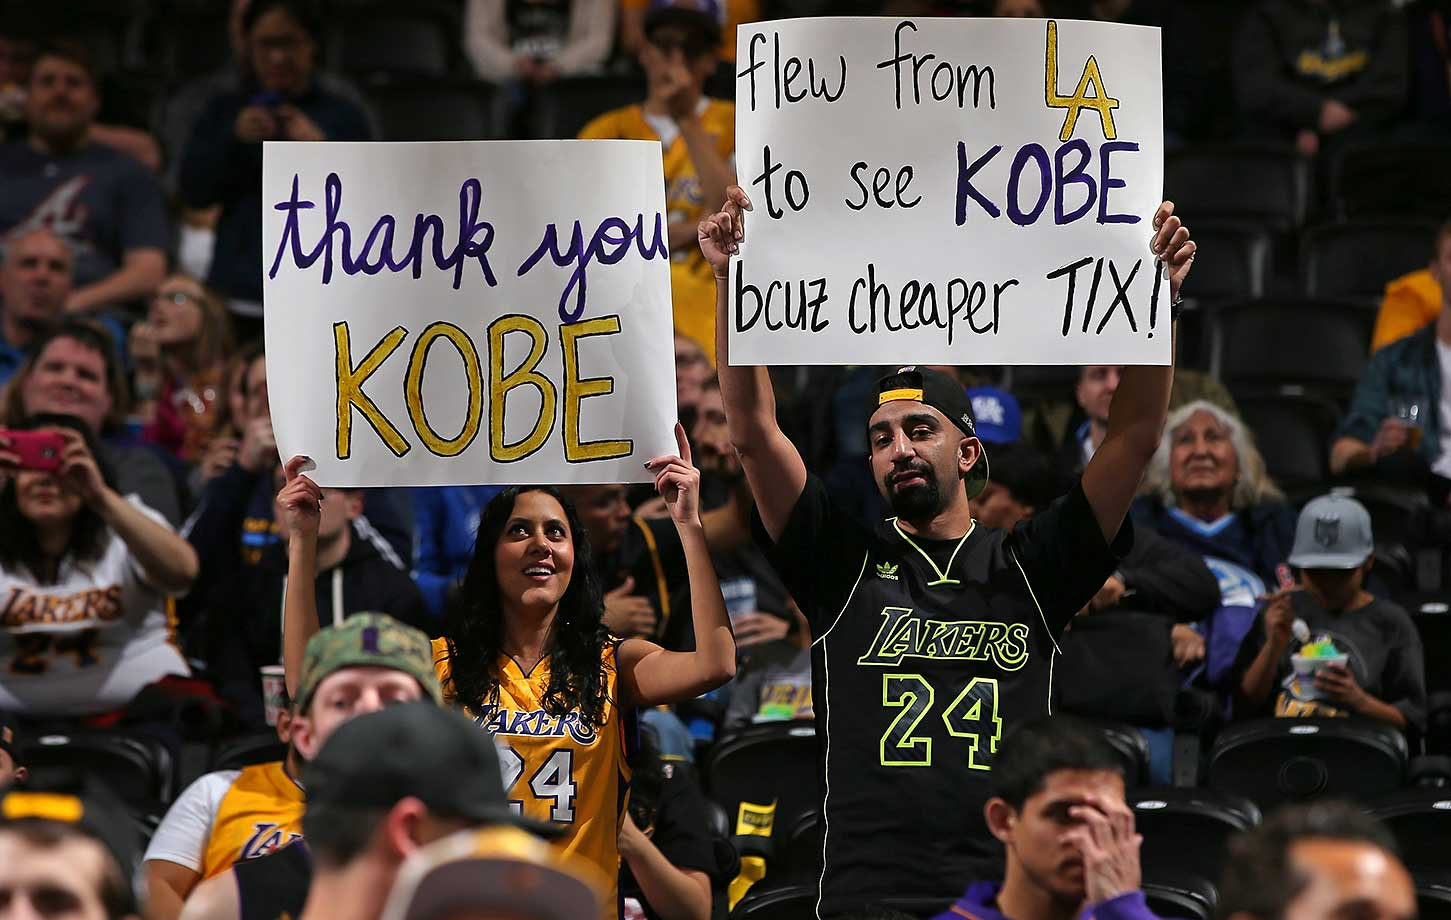 A pair of fans show their support and admiration of Kobe Bryant, who played his final game in Denver Wednesday.